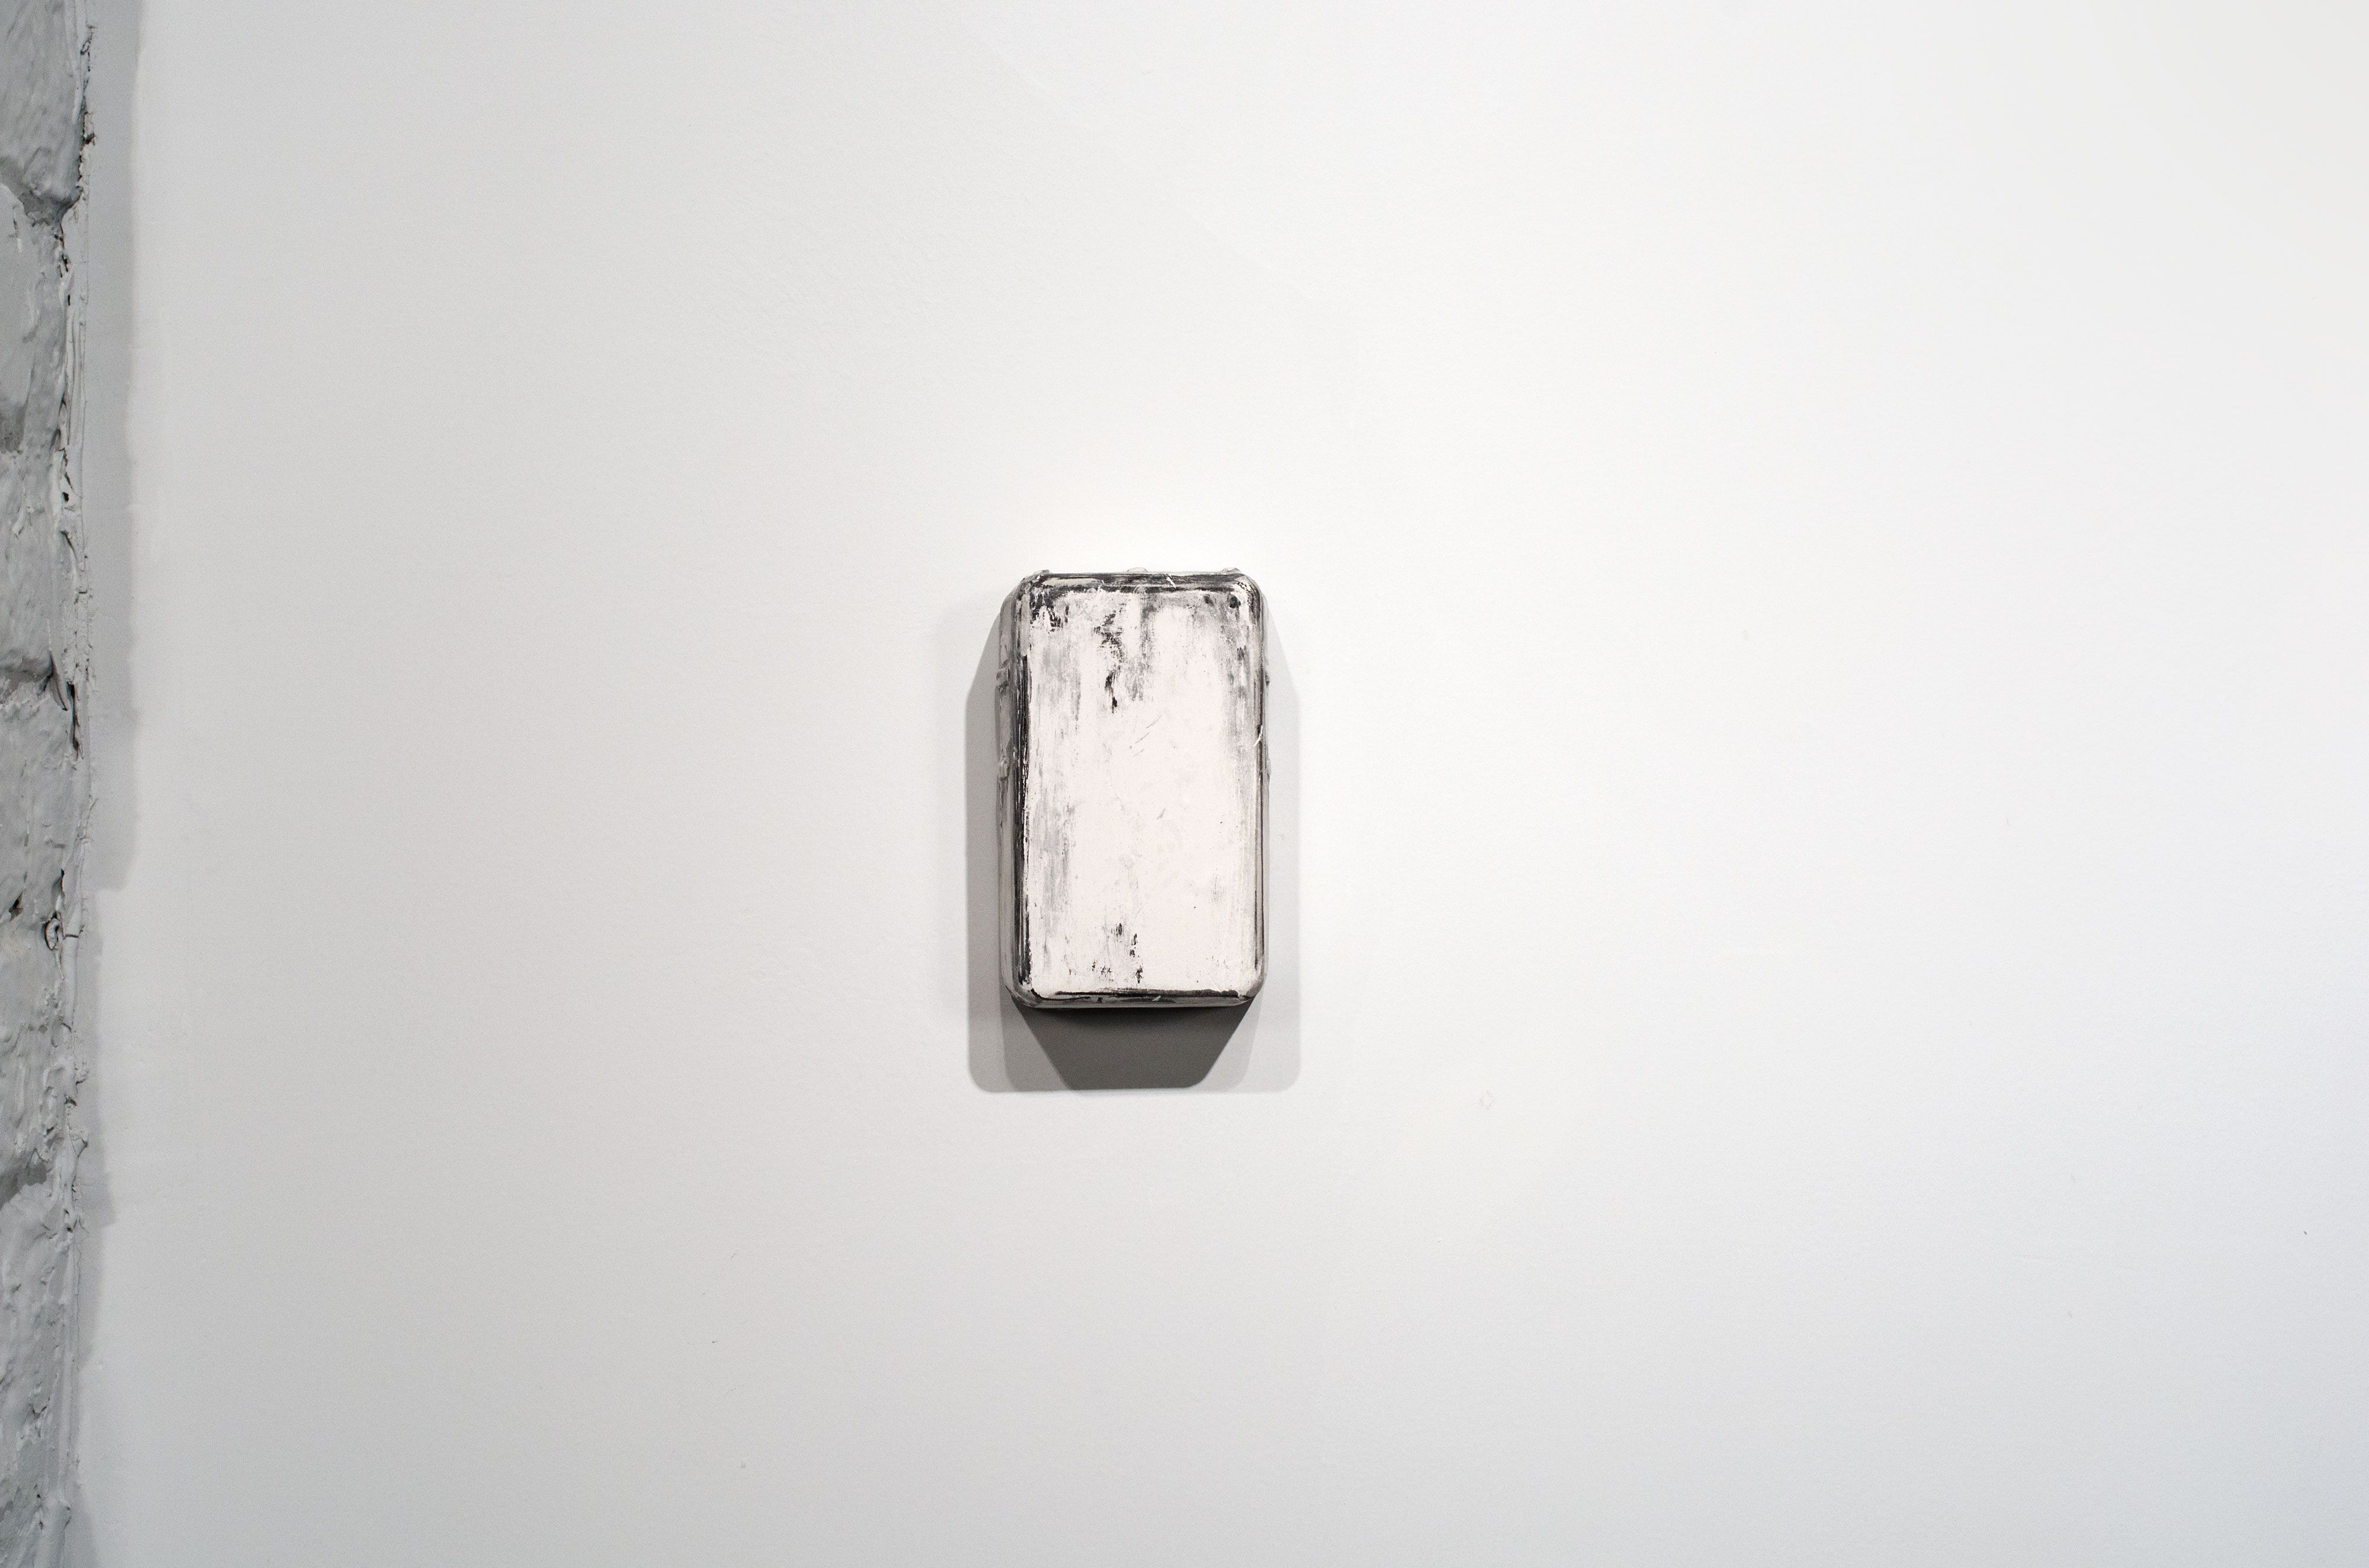 Fernando Joffroy, Untitled (Block), 2012